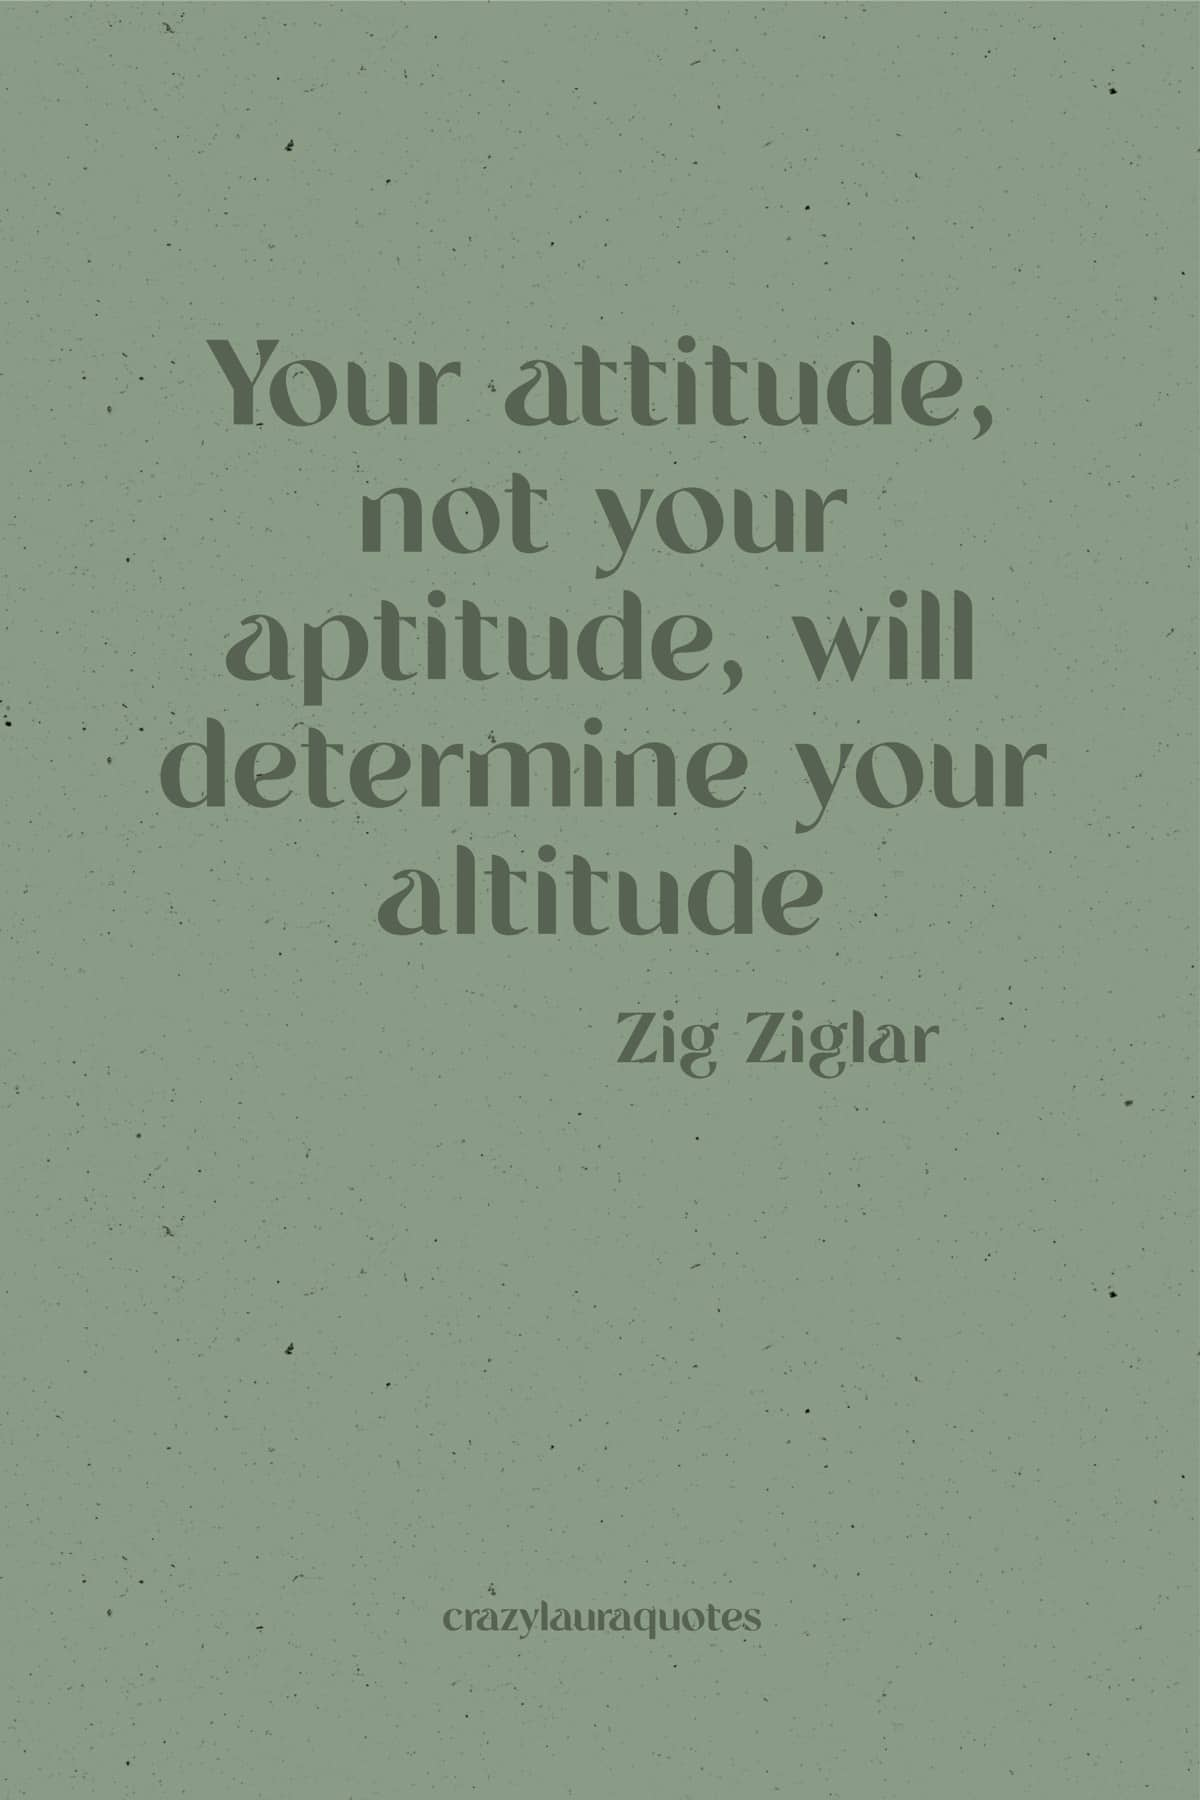 have a positive attitude monday quote